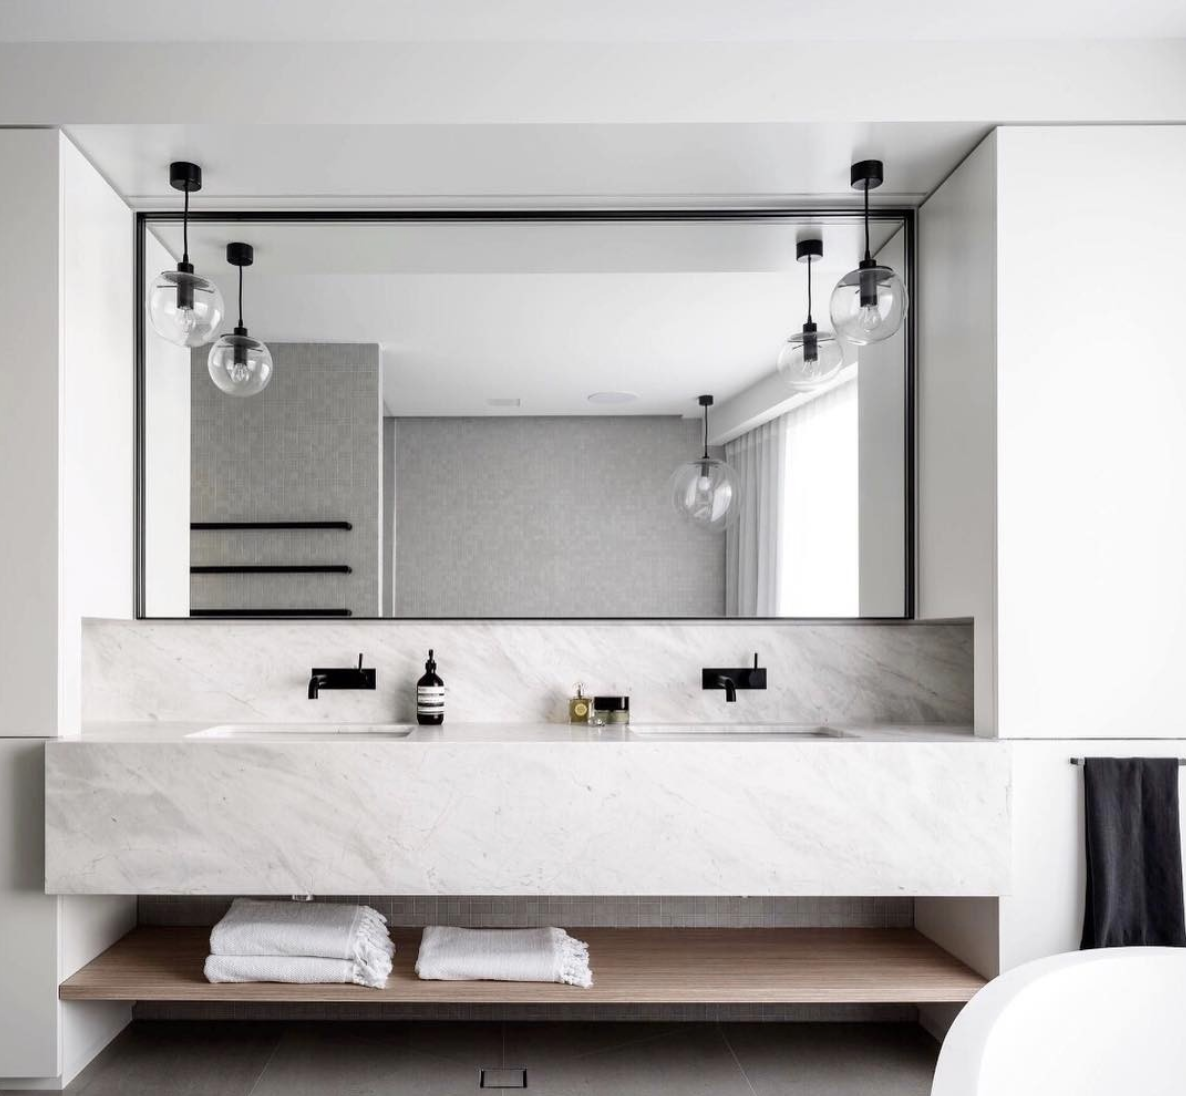 Image:  Justin Alexande r for  Corben Architects